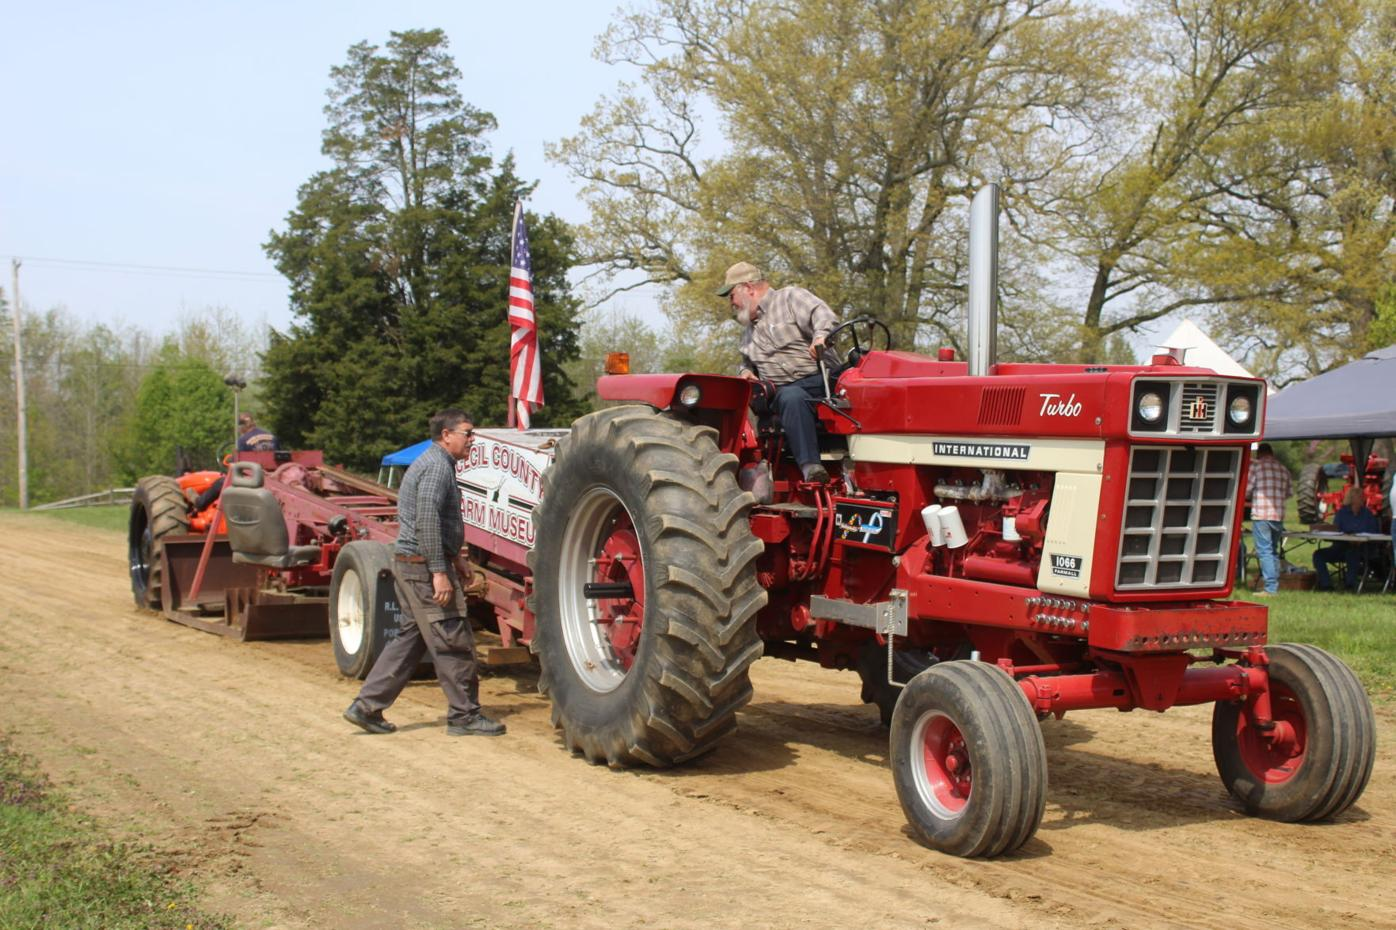 Tractor pull is a sigh of relief for fans, pullers